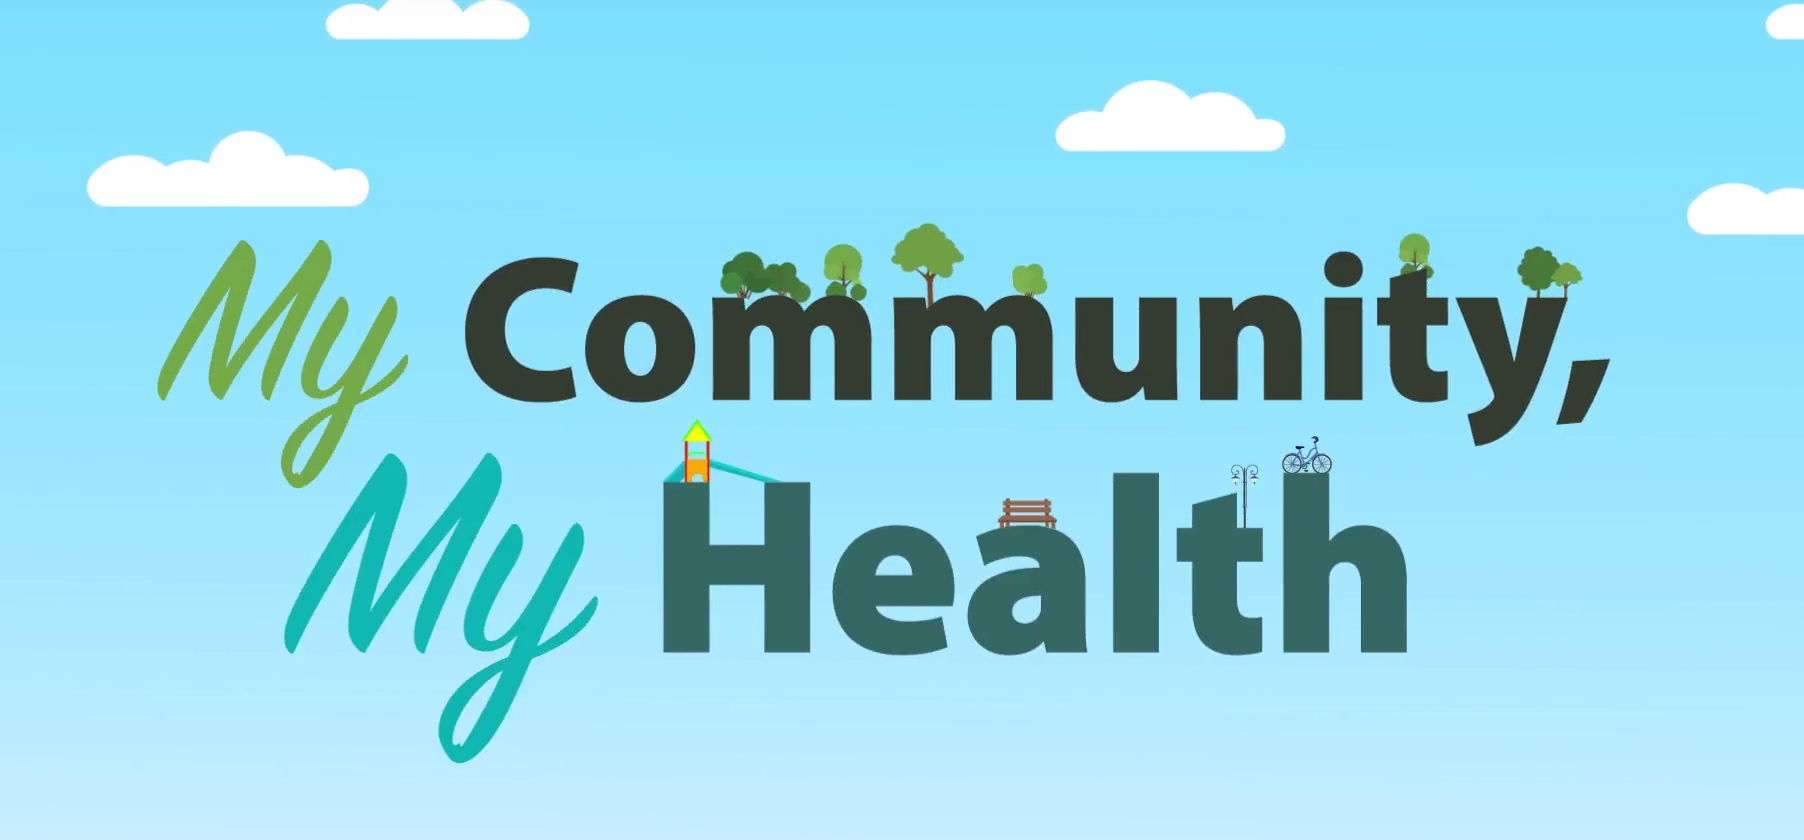 Communities ottawa public health. Setting clipart healthy community graphic royalty free stock